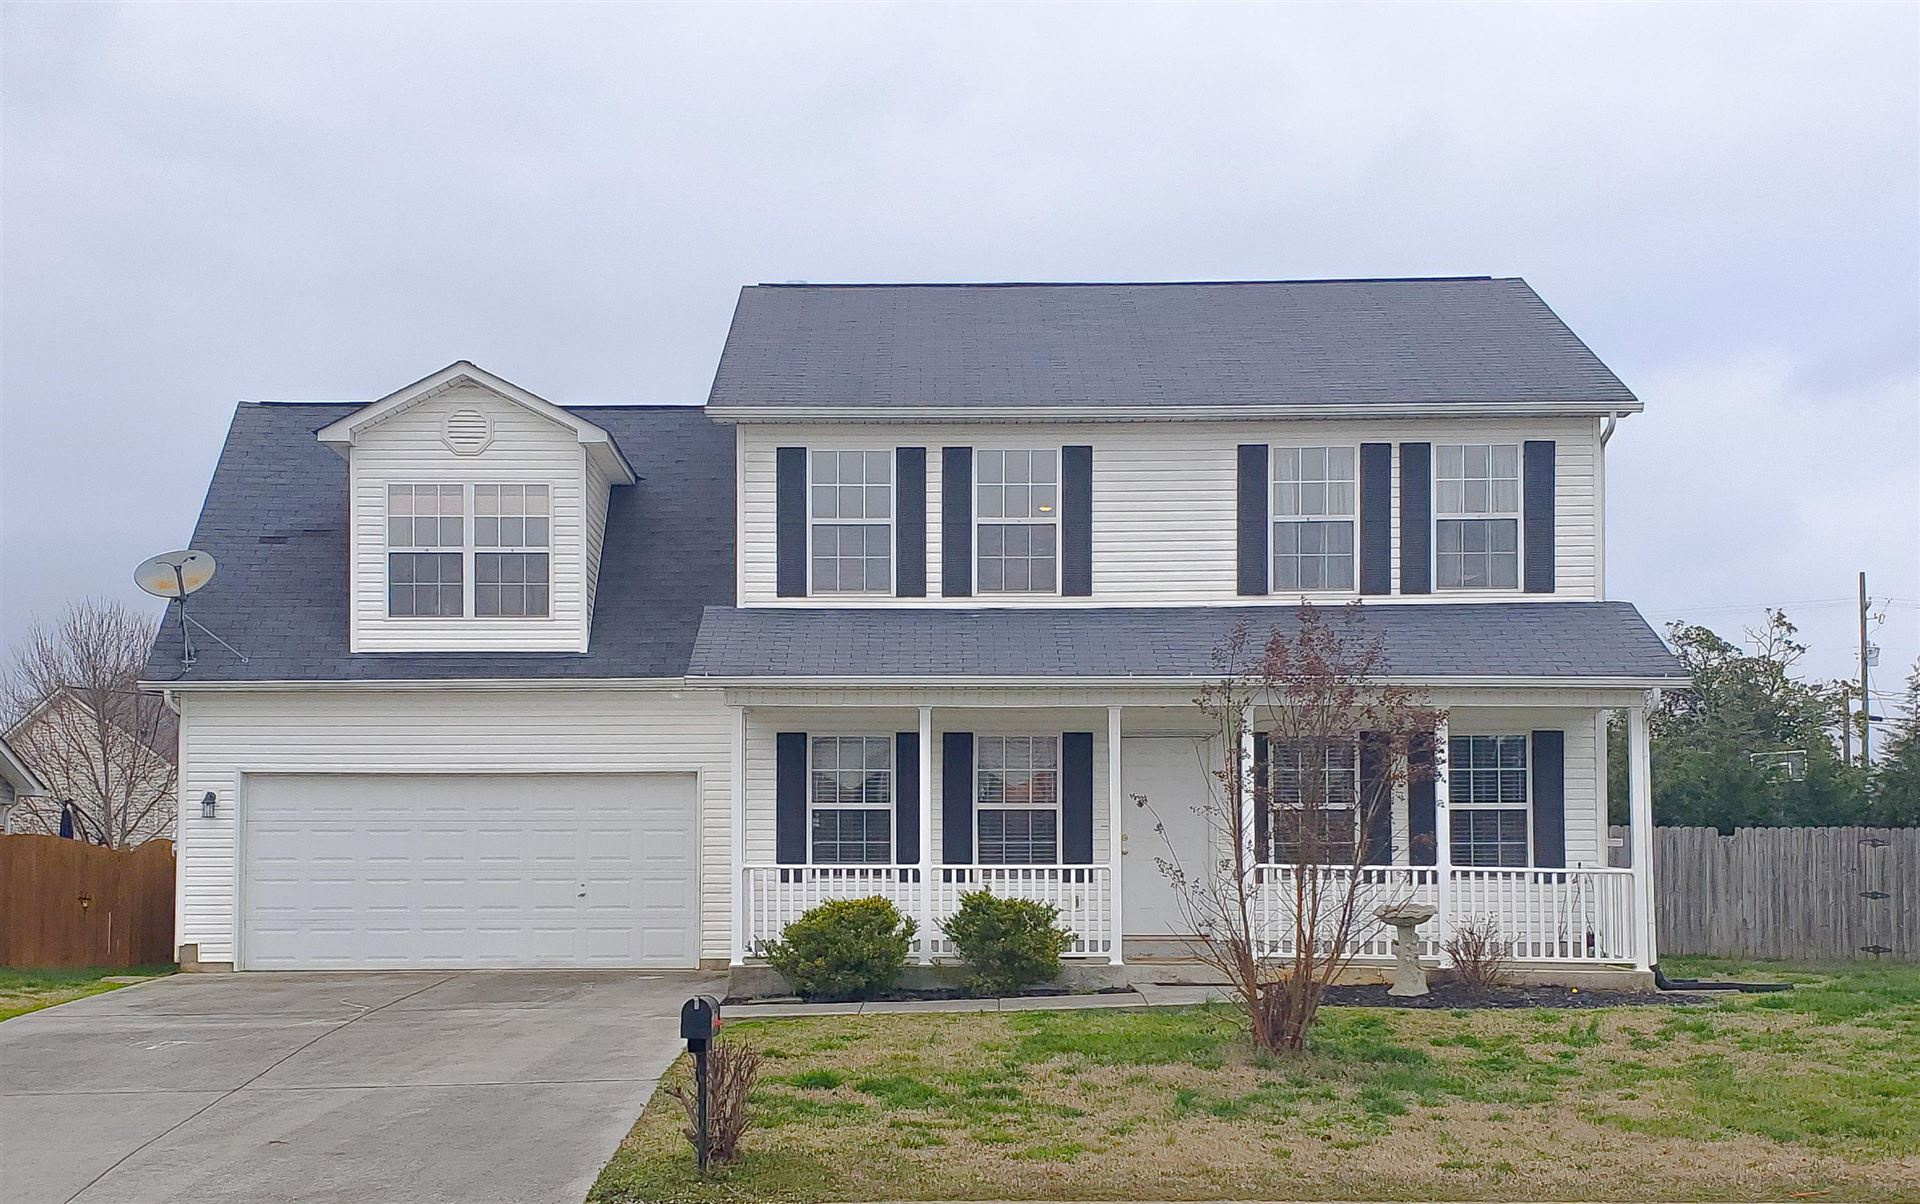 Photo of 7824 Dawnview Rd, Powell, TN 37849 (MLS # 1107382)